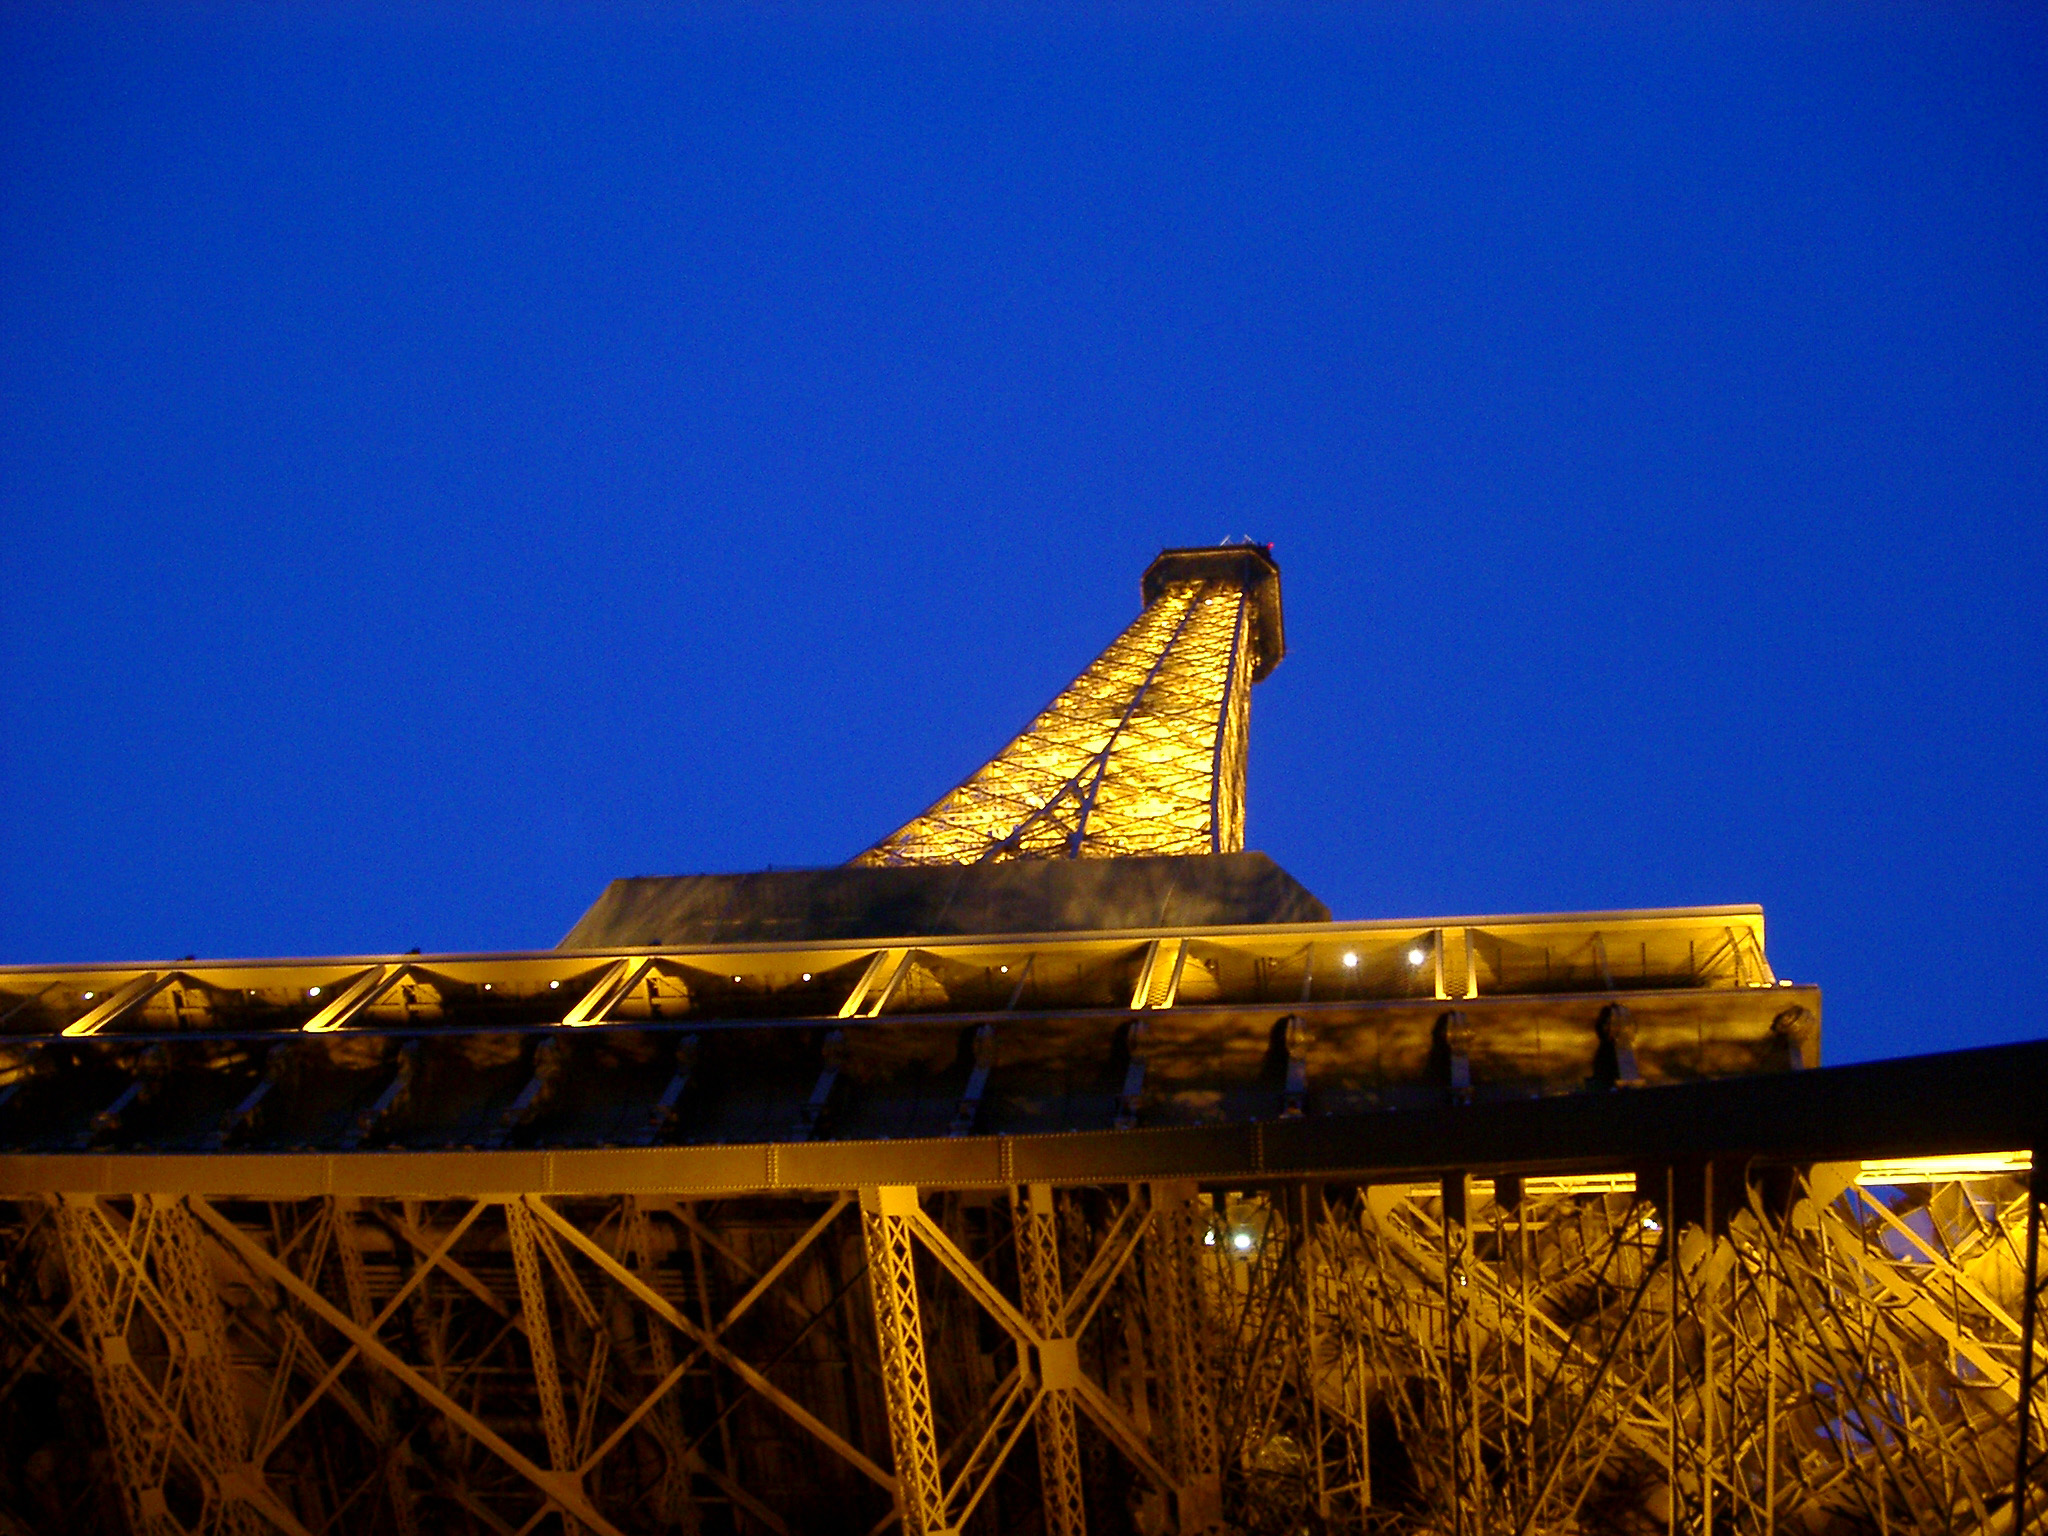 Looking Up at Eiffel Tower with Lights On Against Blue Night Sky, Paris, France